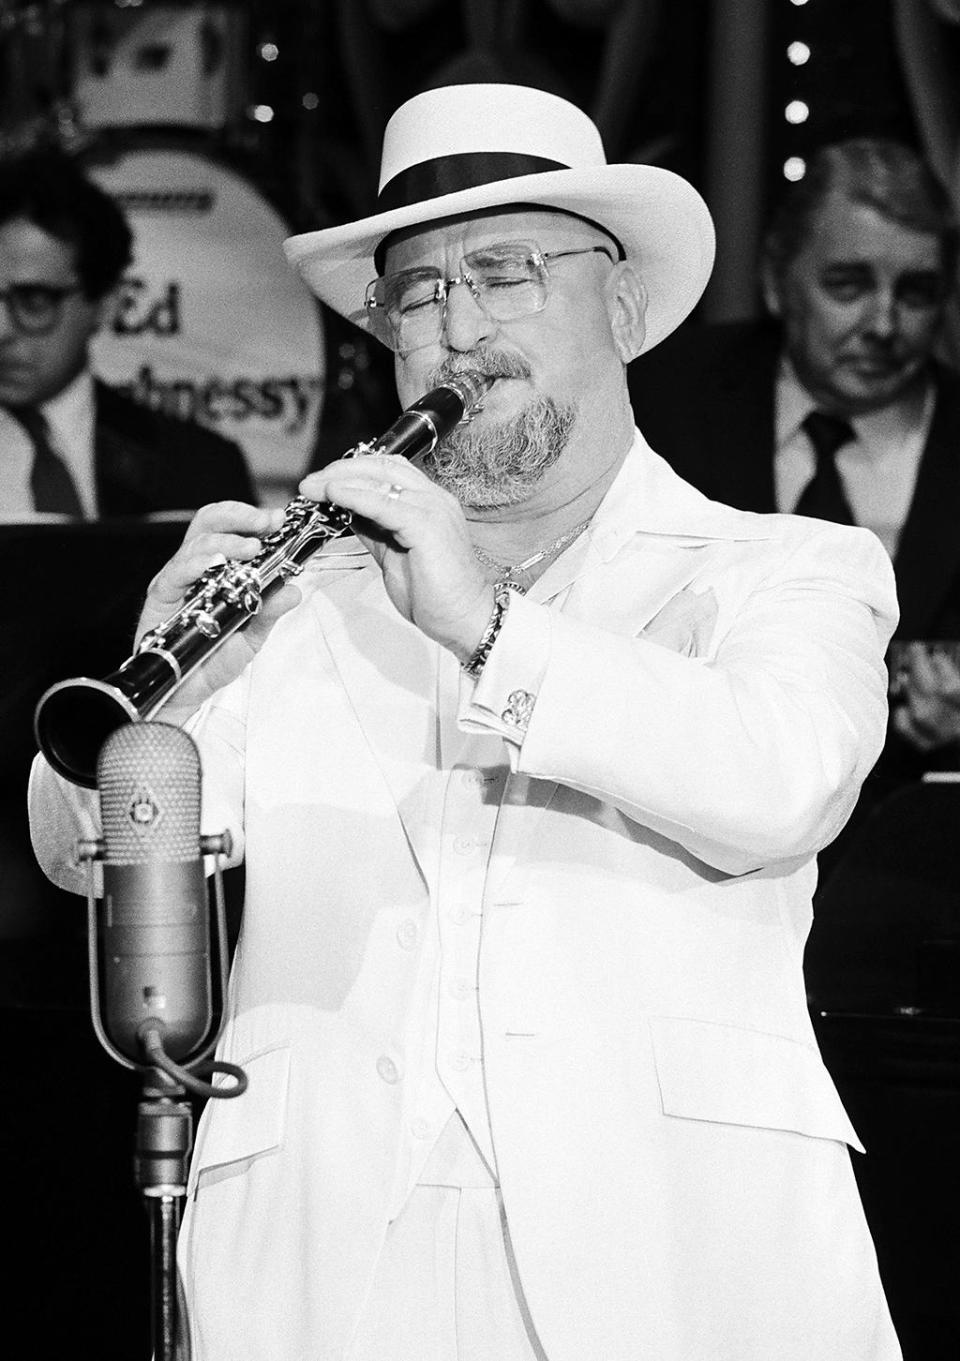 Pete Fountain was a legendary clarinetist who brought traditional New Orleans jazz to the mainstream via his frequent appearances on the Lawrence Welk and Johnny Carson television shows. He died of heart failure on Aug. 6, at age 86. (Photo: Gary Null/NBC/NBCU Photo Bank via Getty Images)